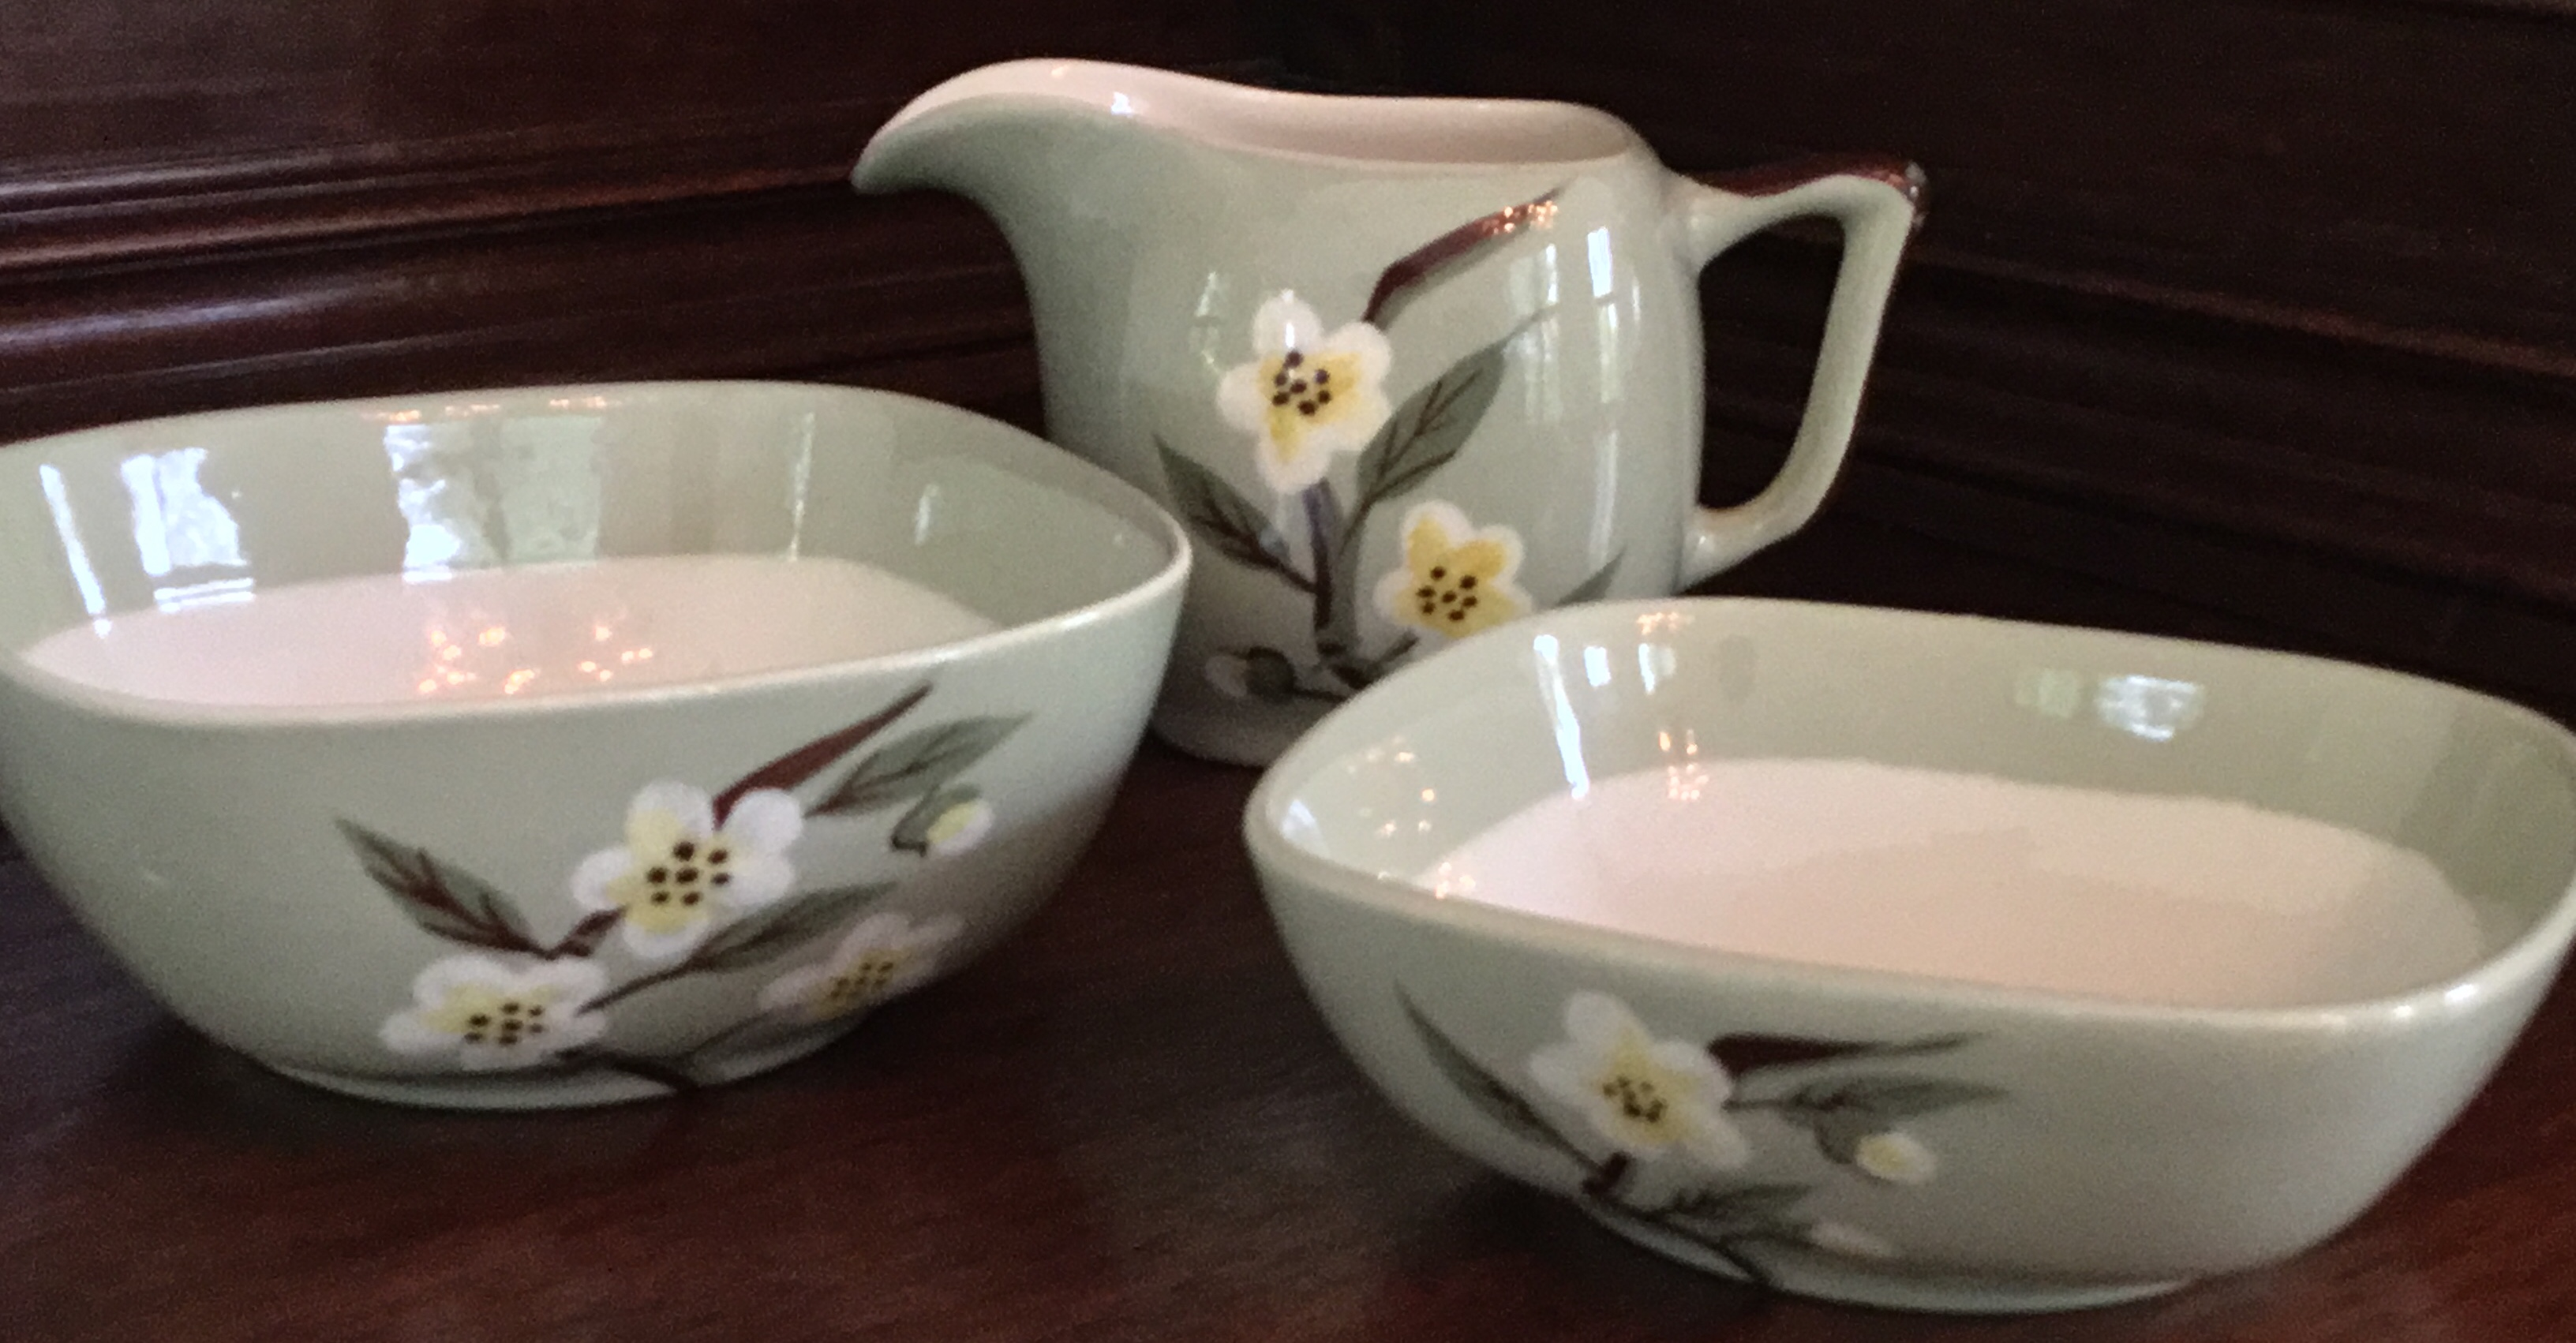 Weil Ware Collection, Set of 3